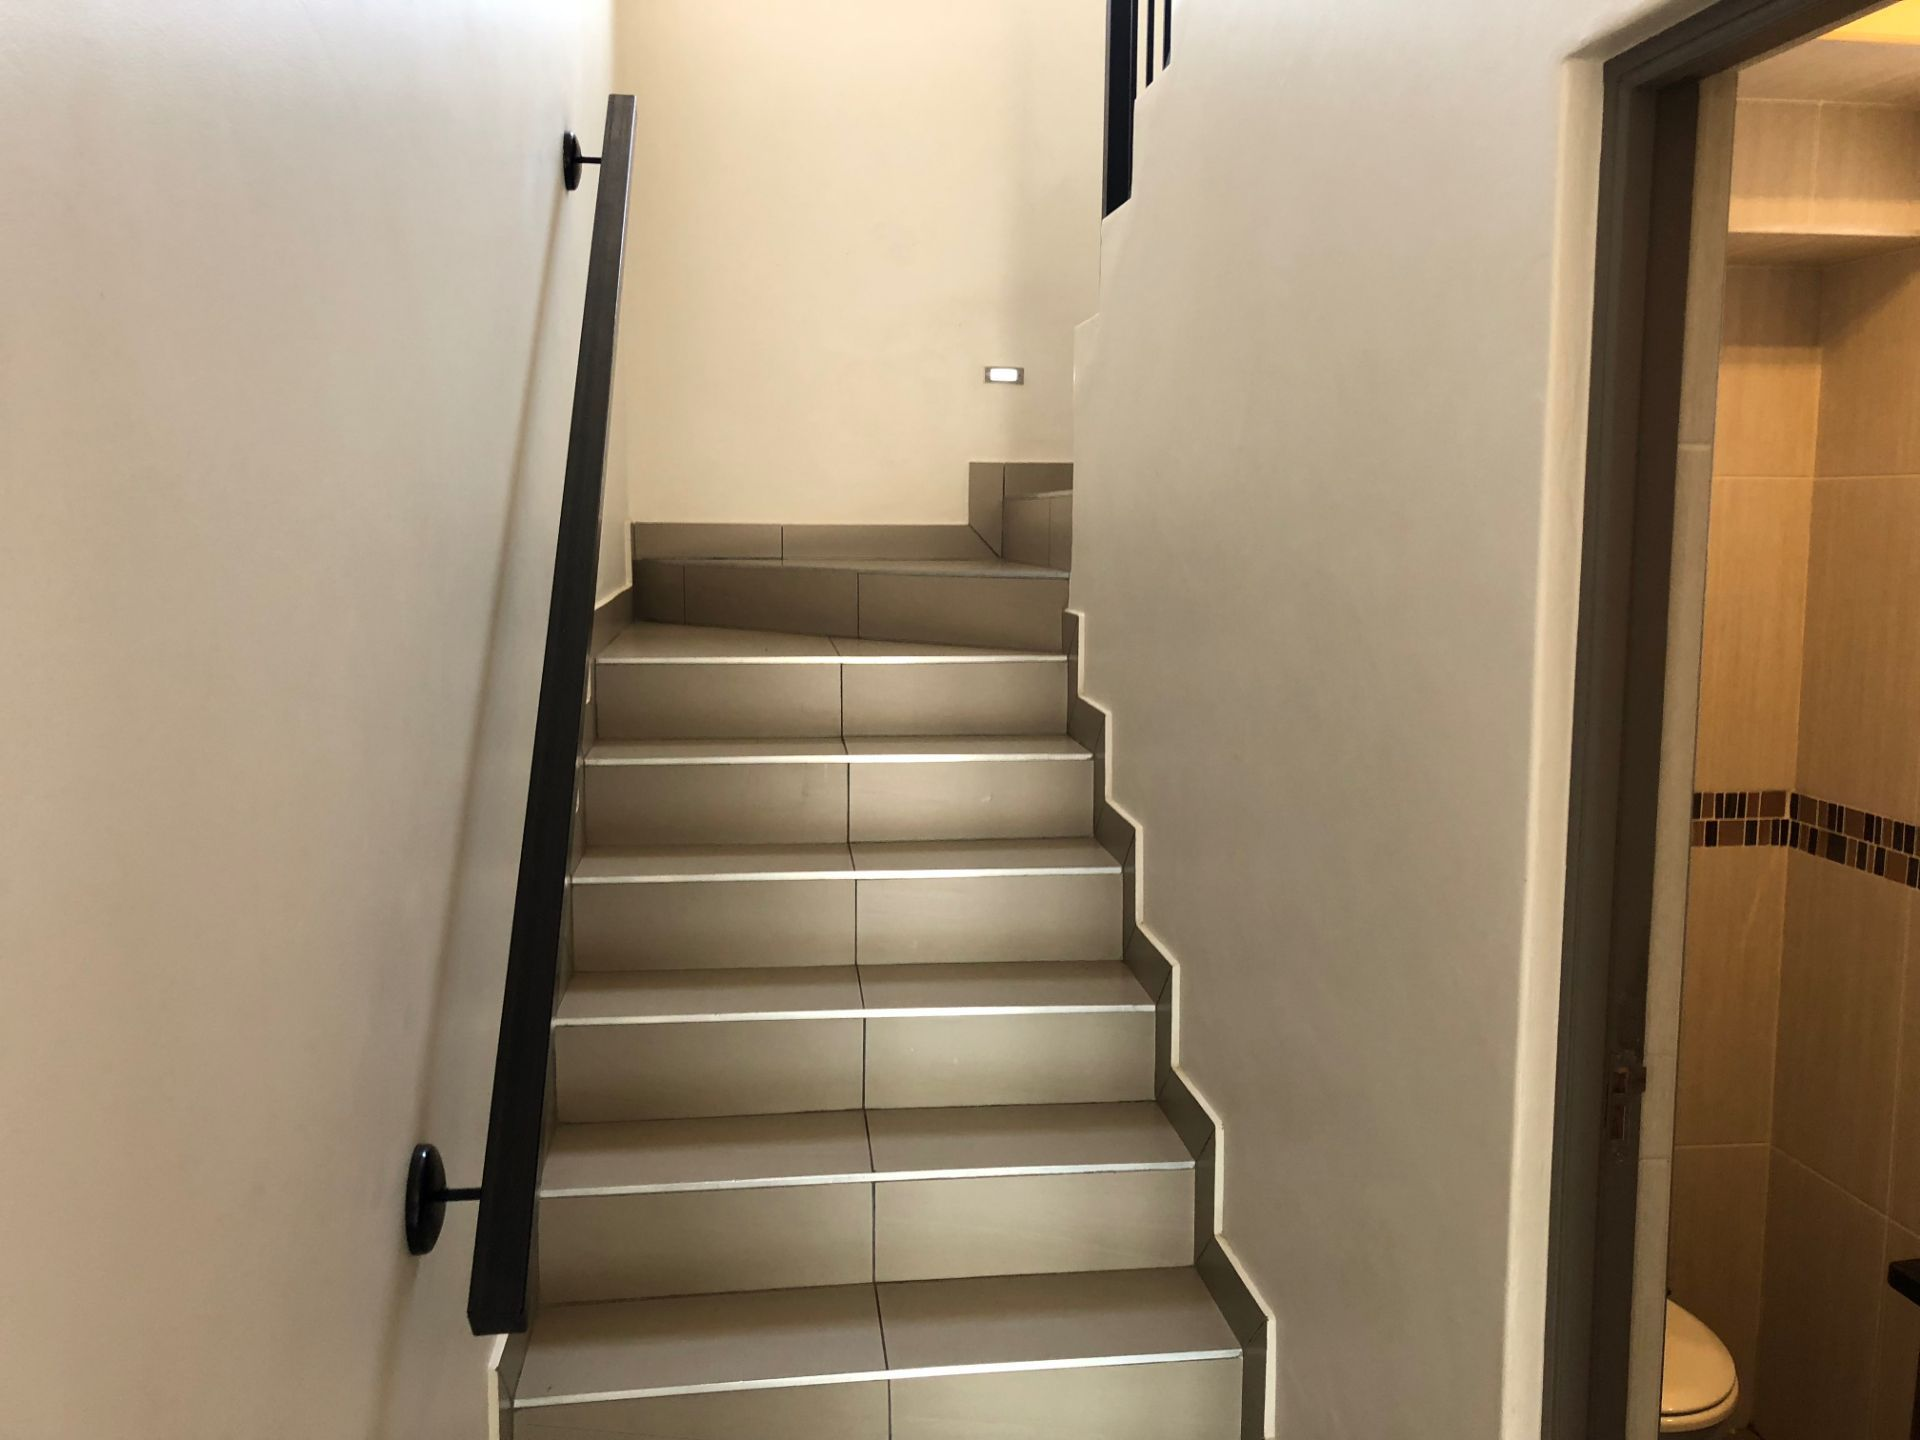 House in Lifestyle Estate - Stairs